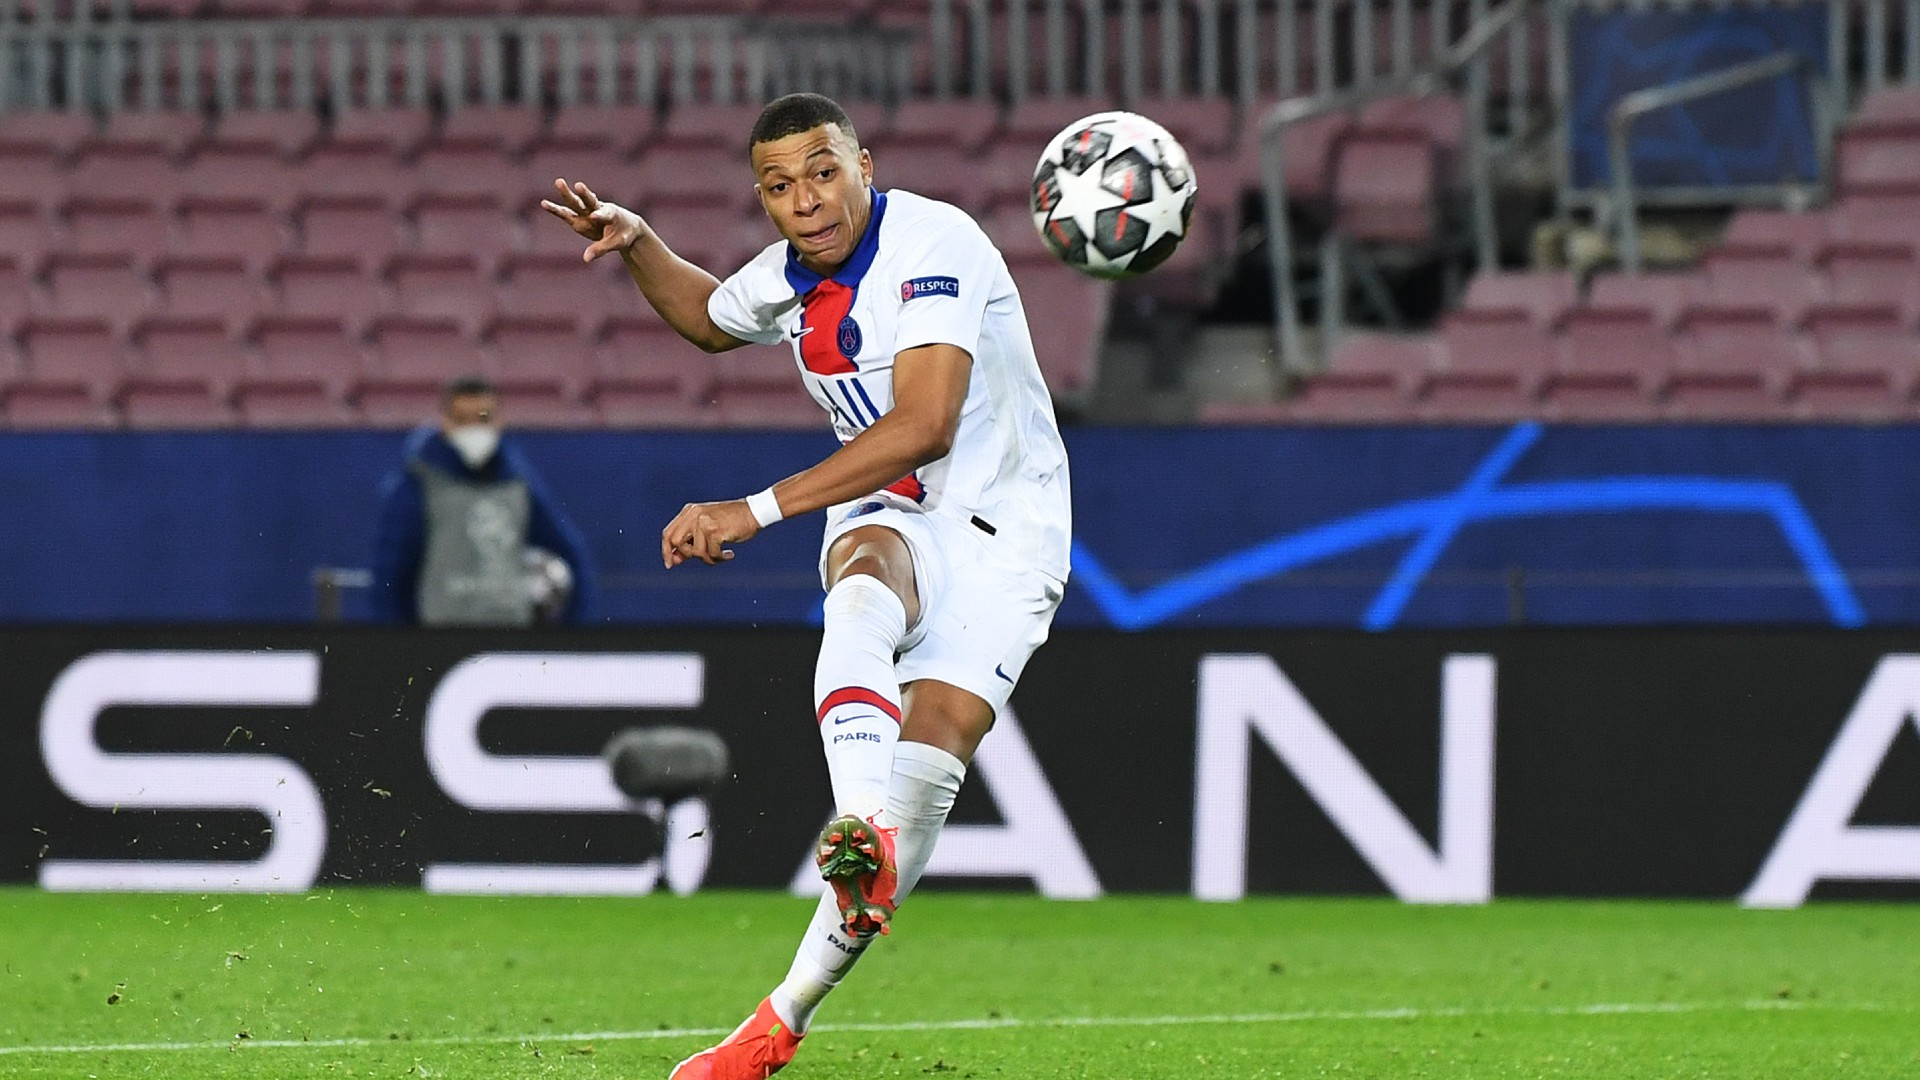 Talks over a new deal for Kylian Mbappe must come to a conclusion soon, Paris Saint-Germain's sporting director has said.